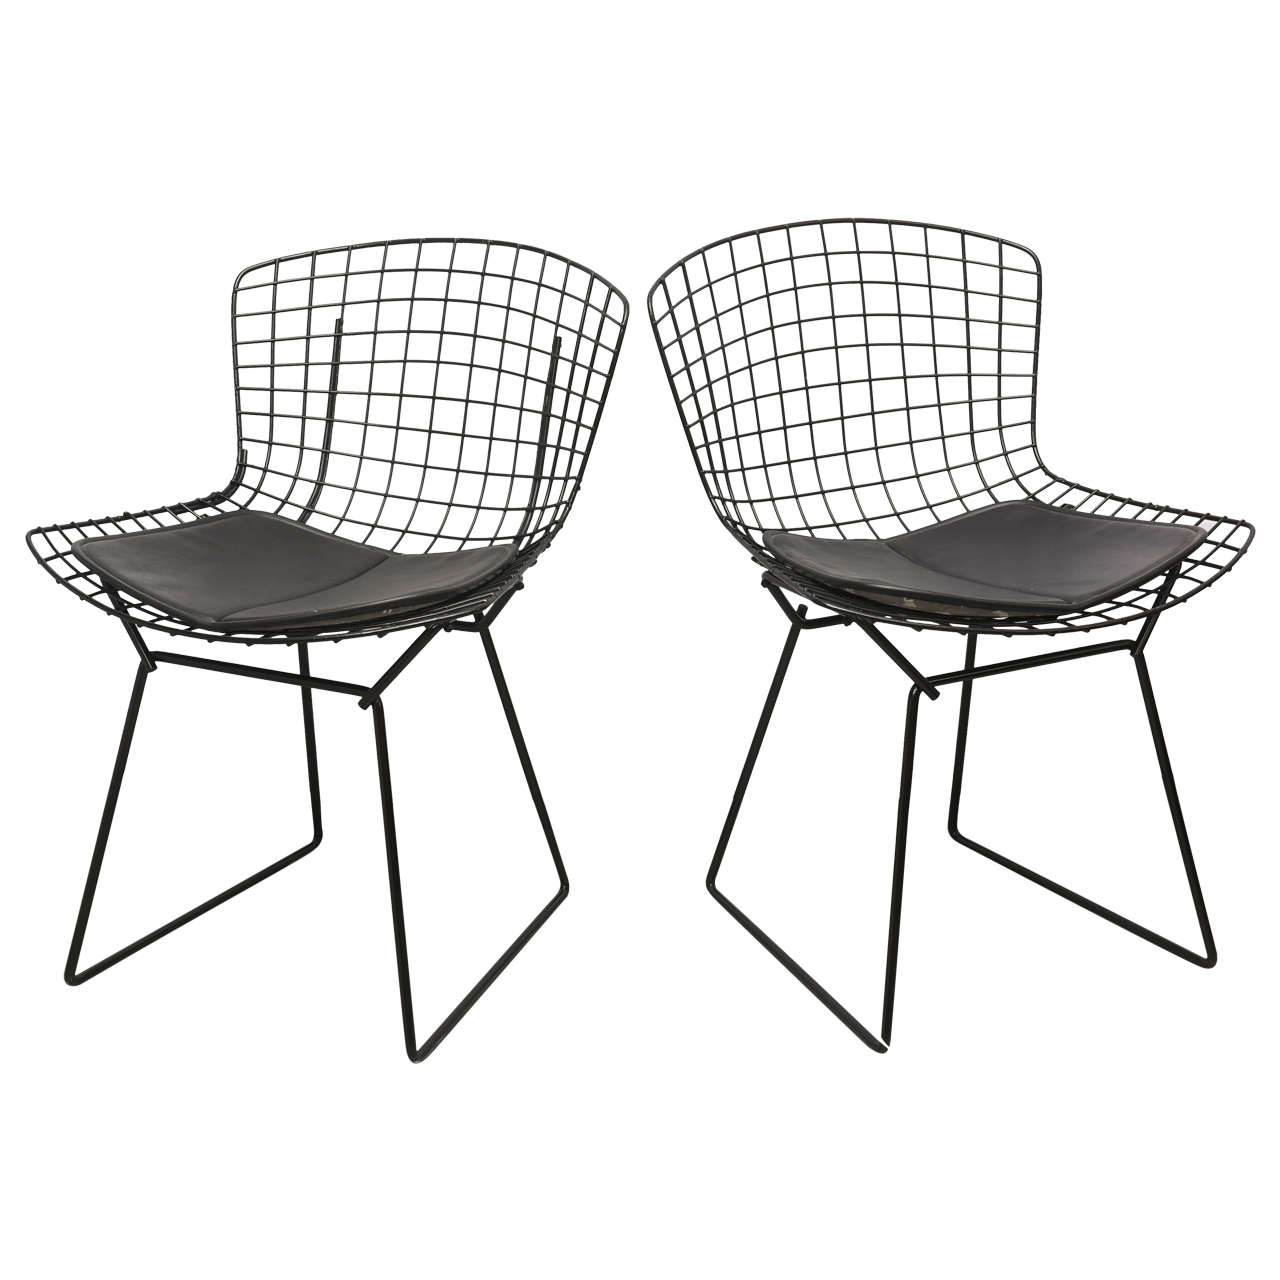 Bertoia Wire Chairs with Black Leather Knoll Cushions, 1960s, USA 1